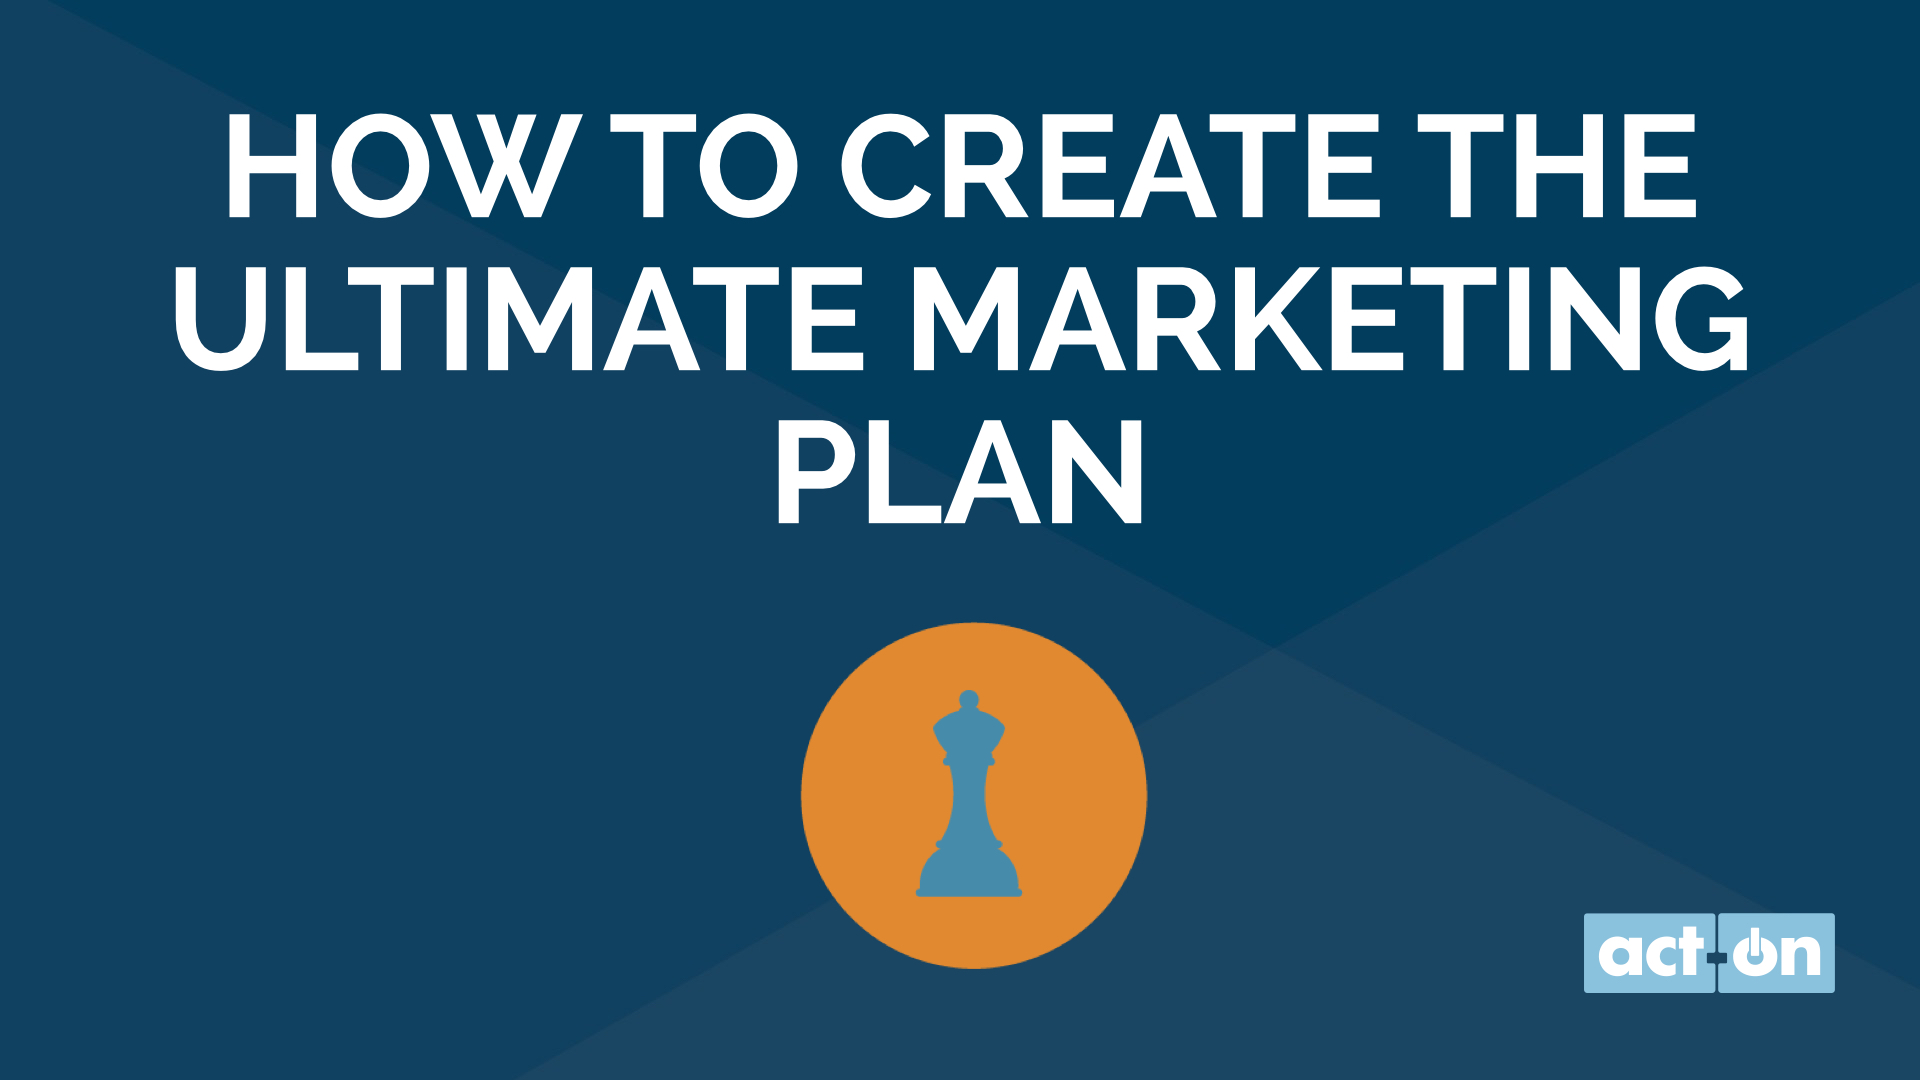 How to Create the Ultimate Marketing Plan